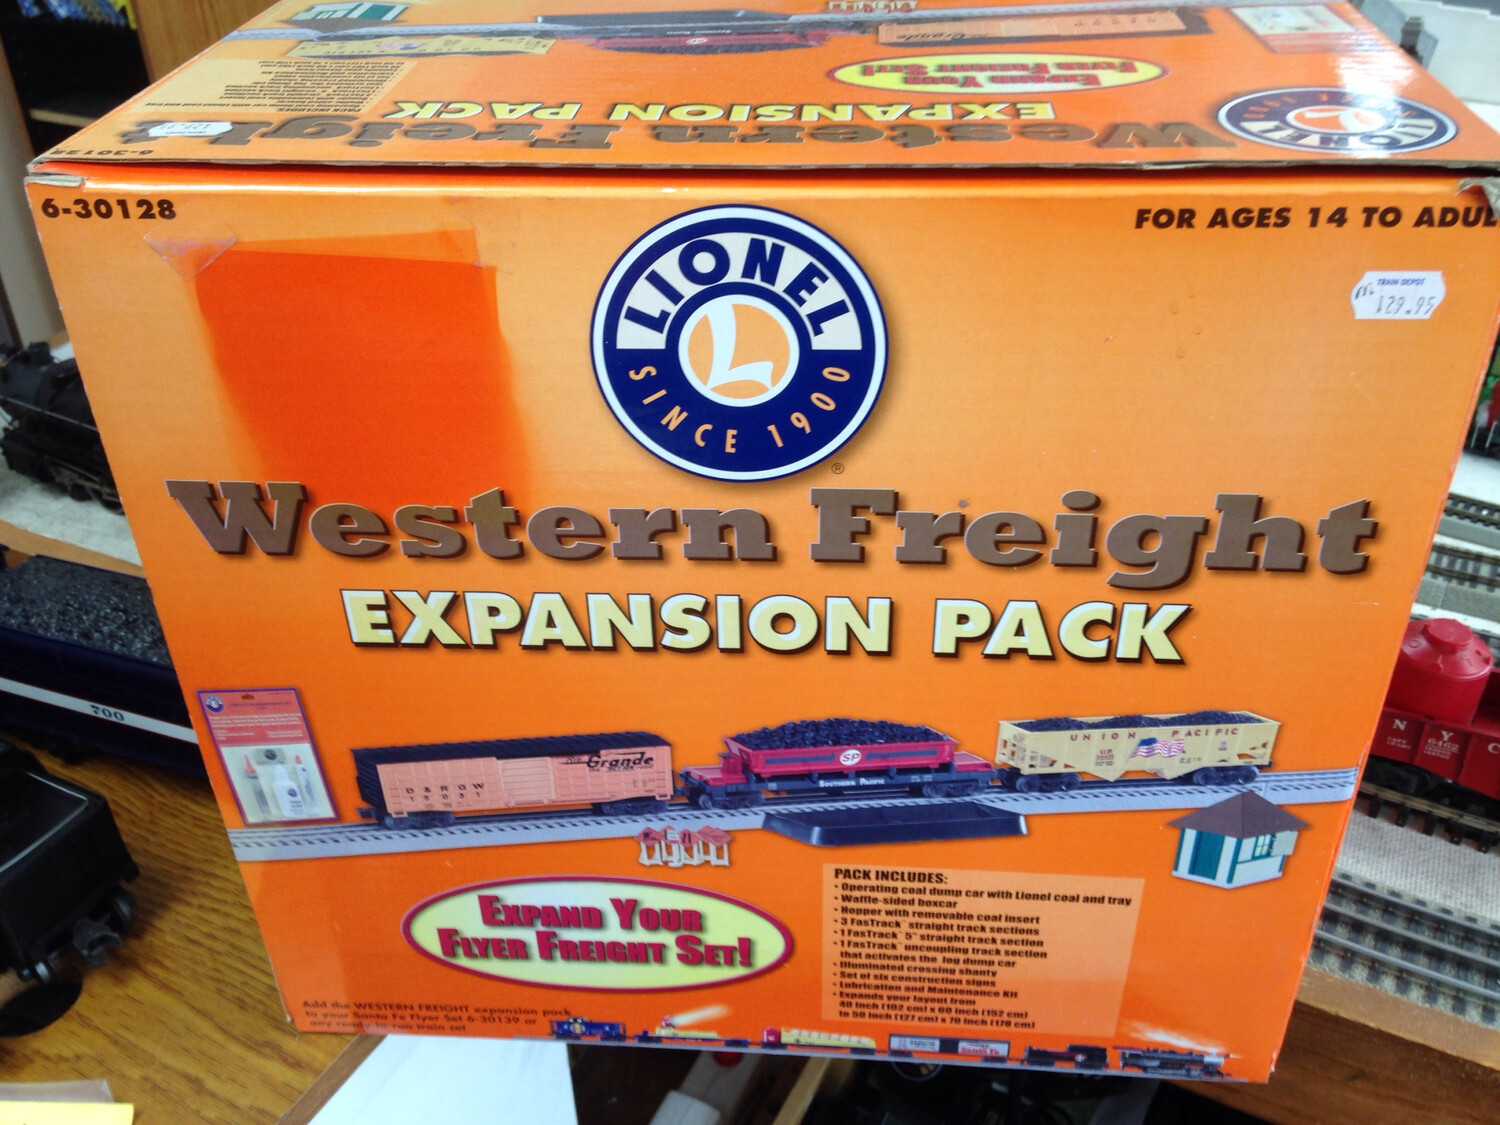 Lionel Western Freight Expansion Pack. 6-30128